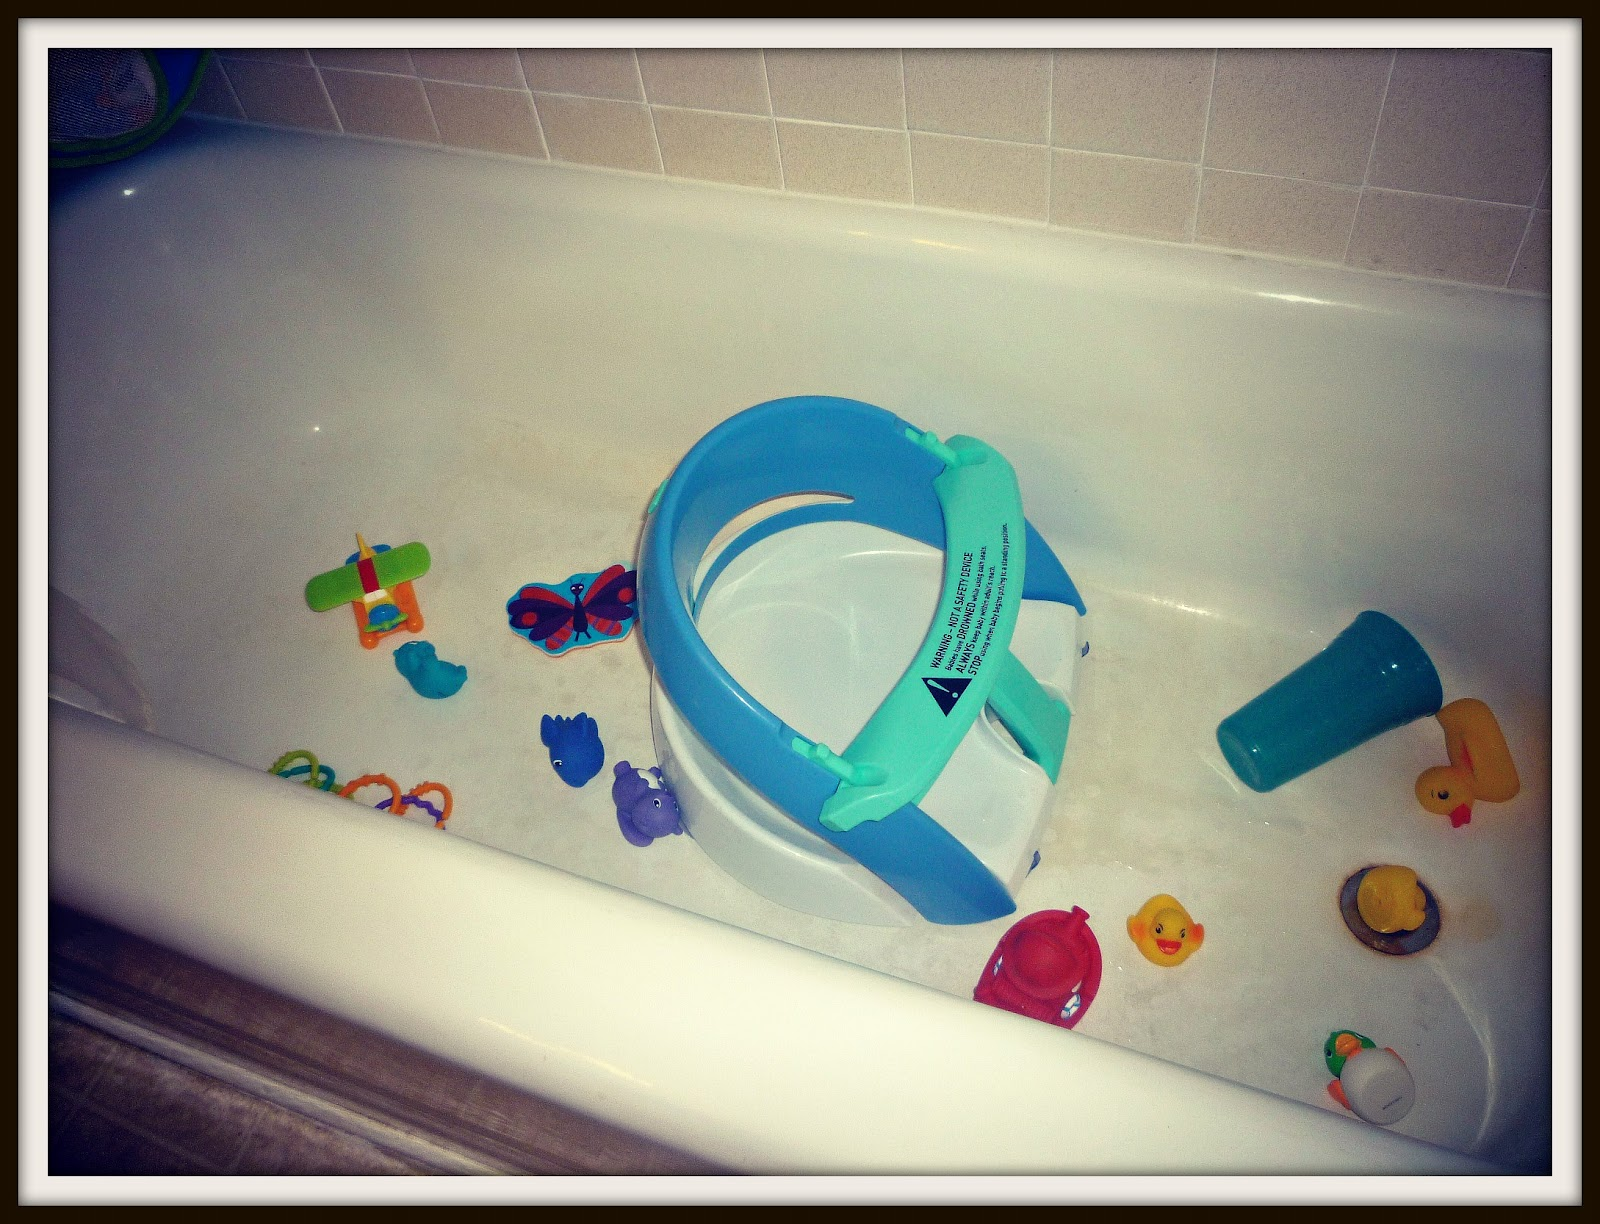 Proverbs and Pacifiers: October 2012